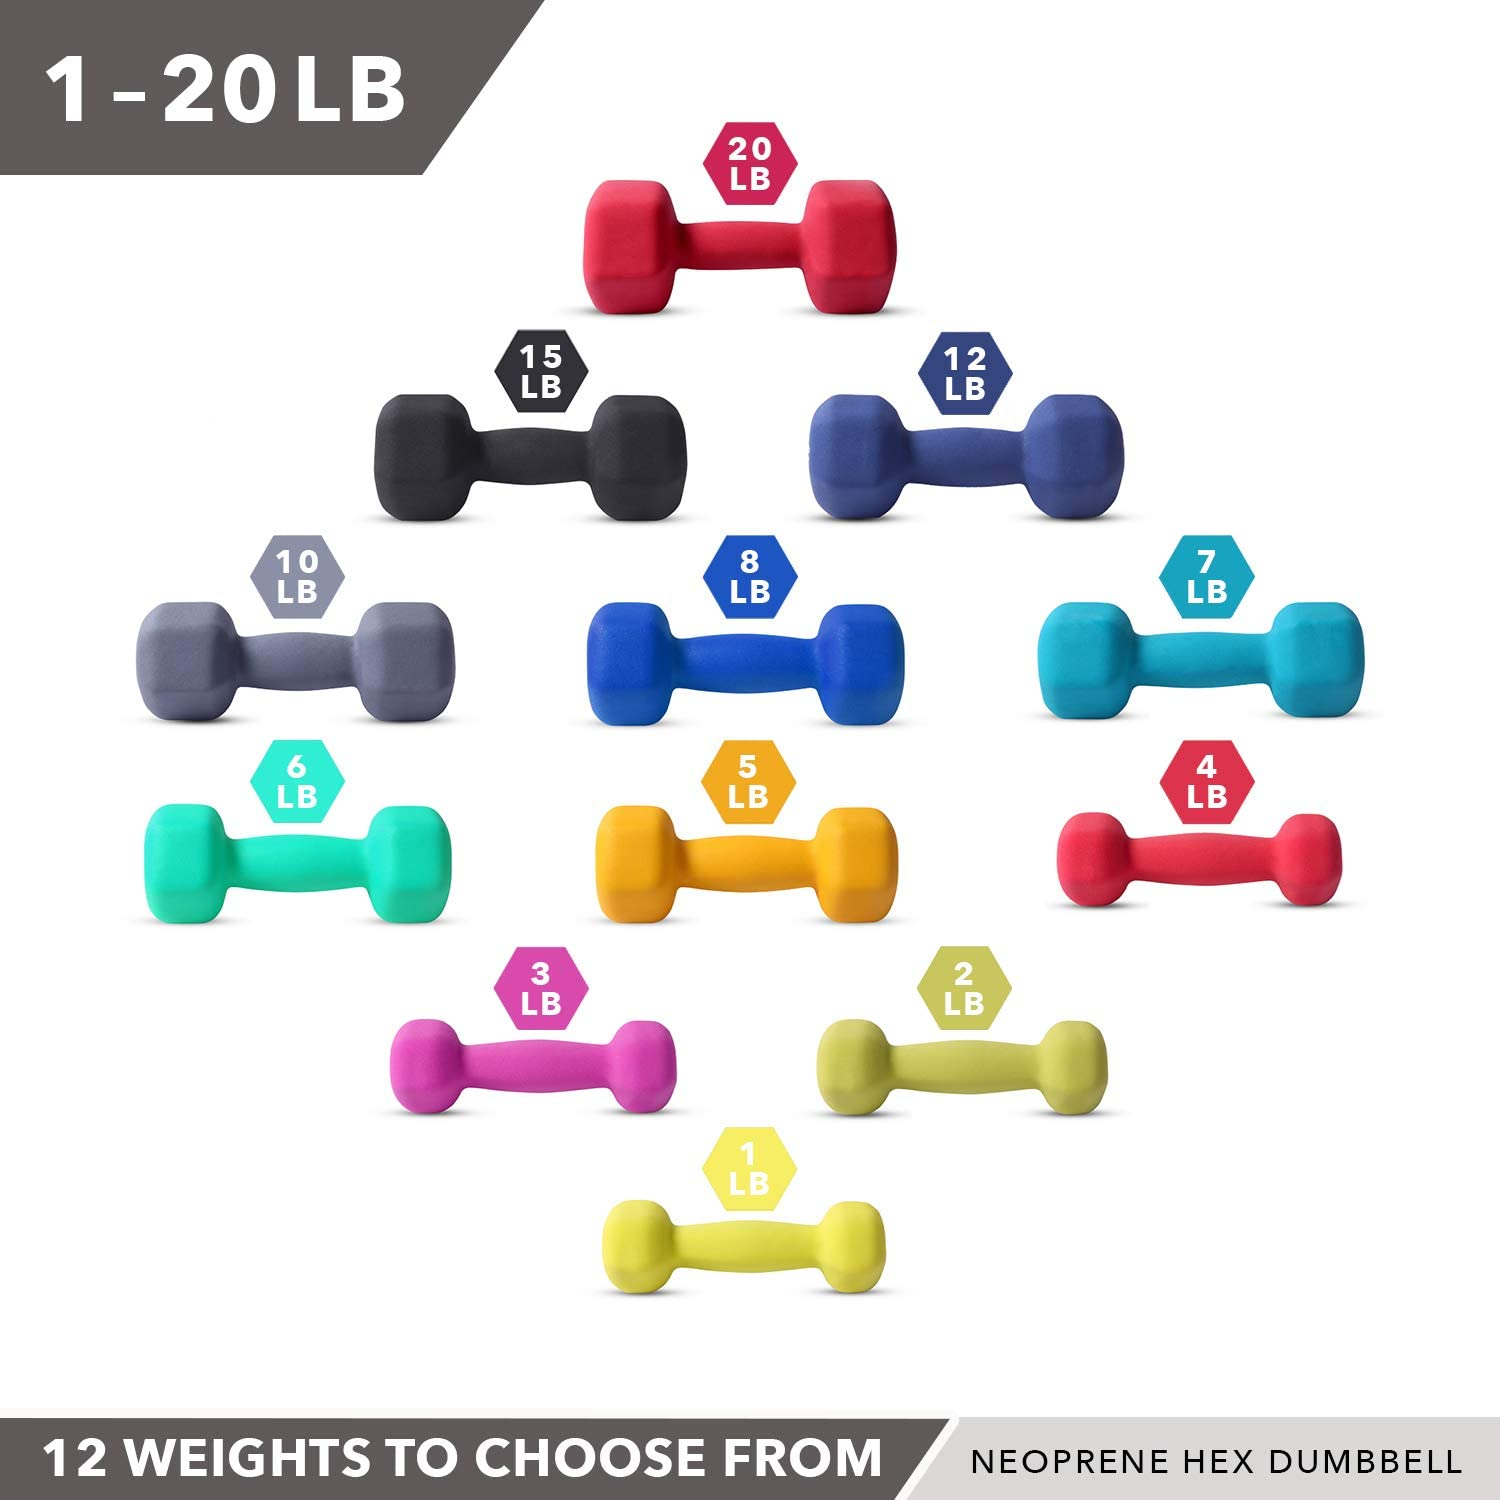 Strength Building Hexagon Shape 12 WEIGHT OPTIONS Easy to Read Hand Weights for Muscle Toning 1-20 LBS Non-Slip Weight Loss Neoprene Dumbbell Pairs by Day 1 Fitness Color Coded